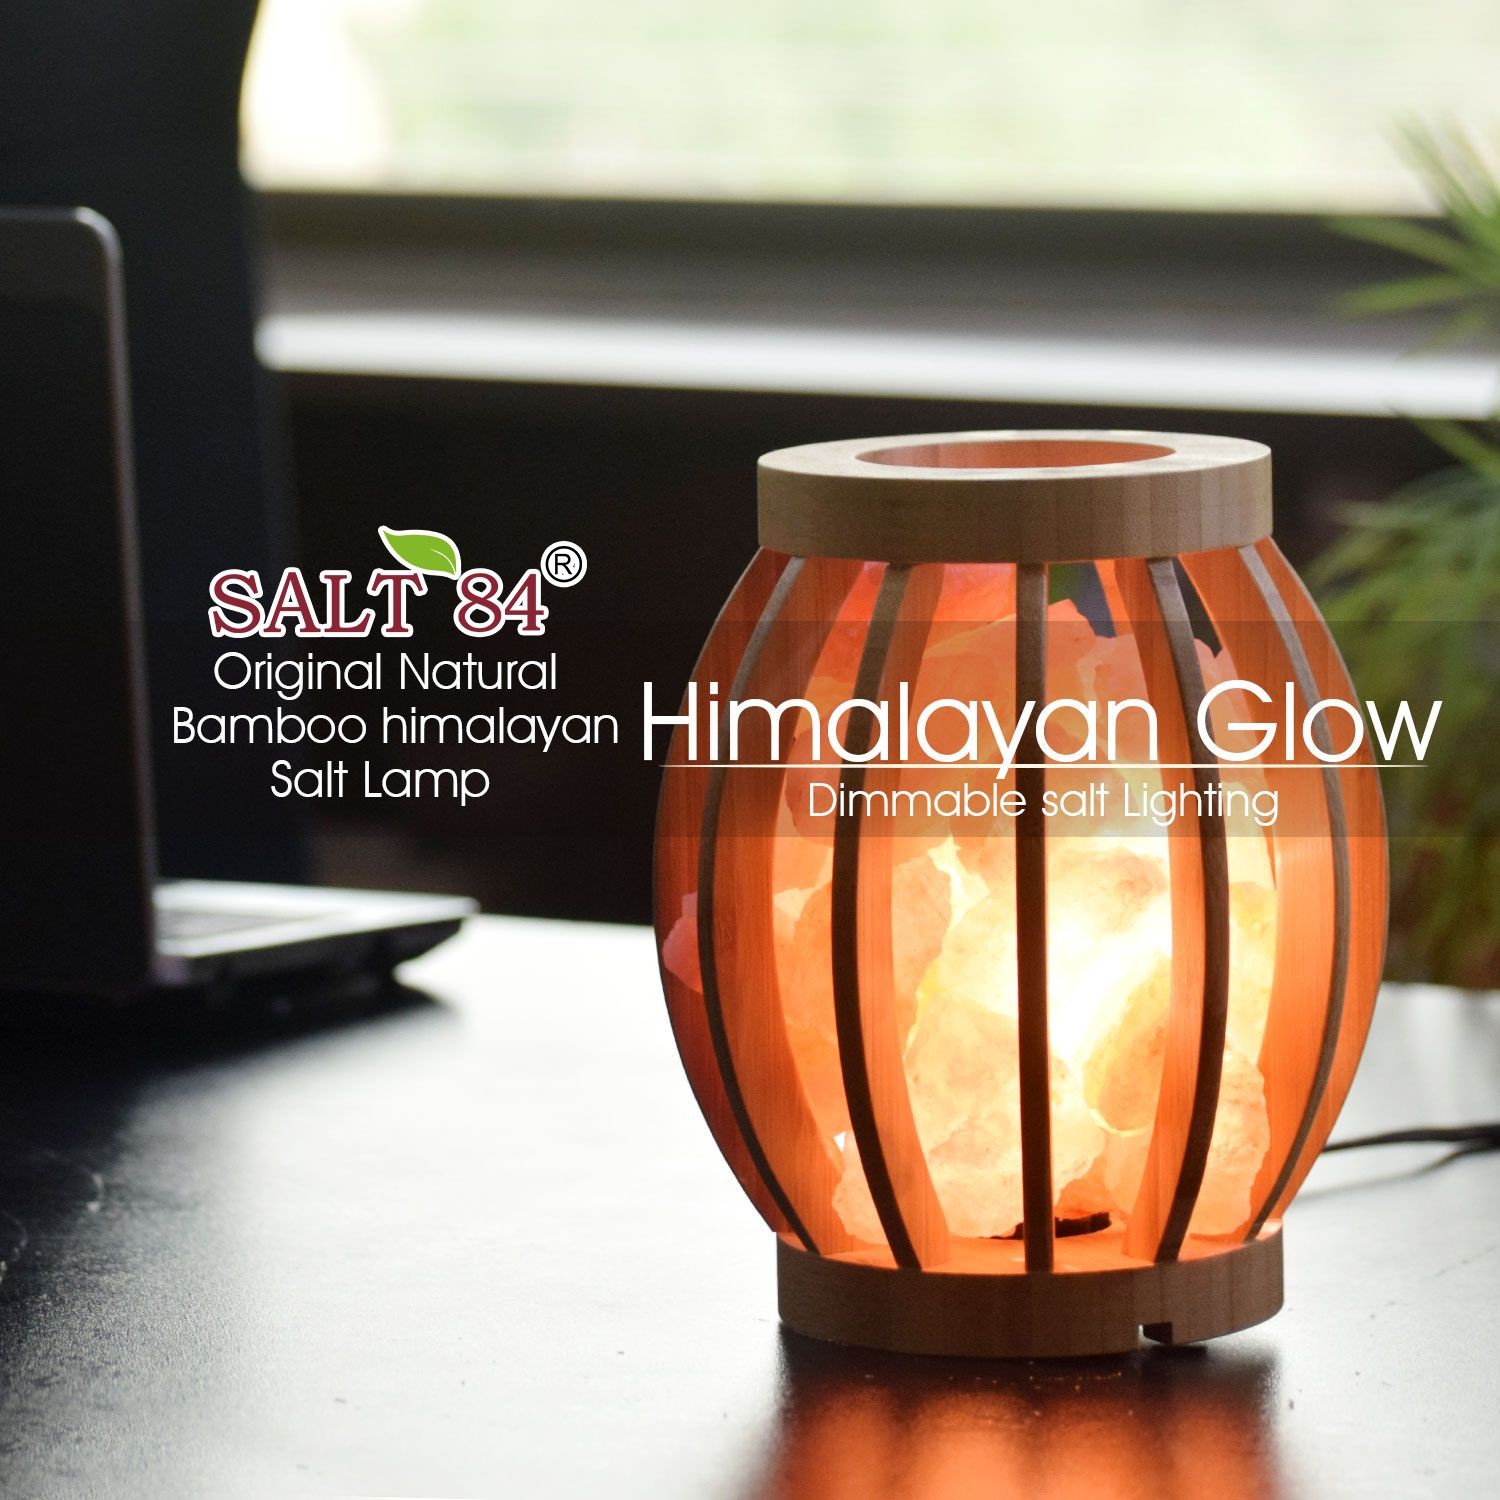 Salt84 Offers The Beautifully Designed Bamboo Basket Salt Lamp That Gives The Unique Look To Your Living Places Saltlamp Salt Lamp Salt Lamps Salt Rock Lamp